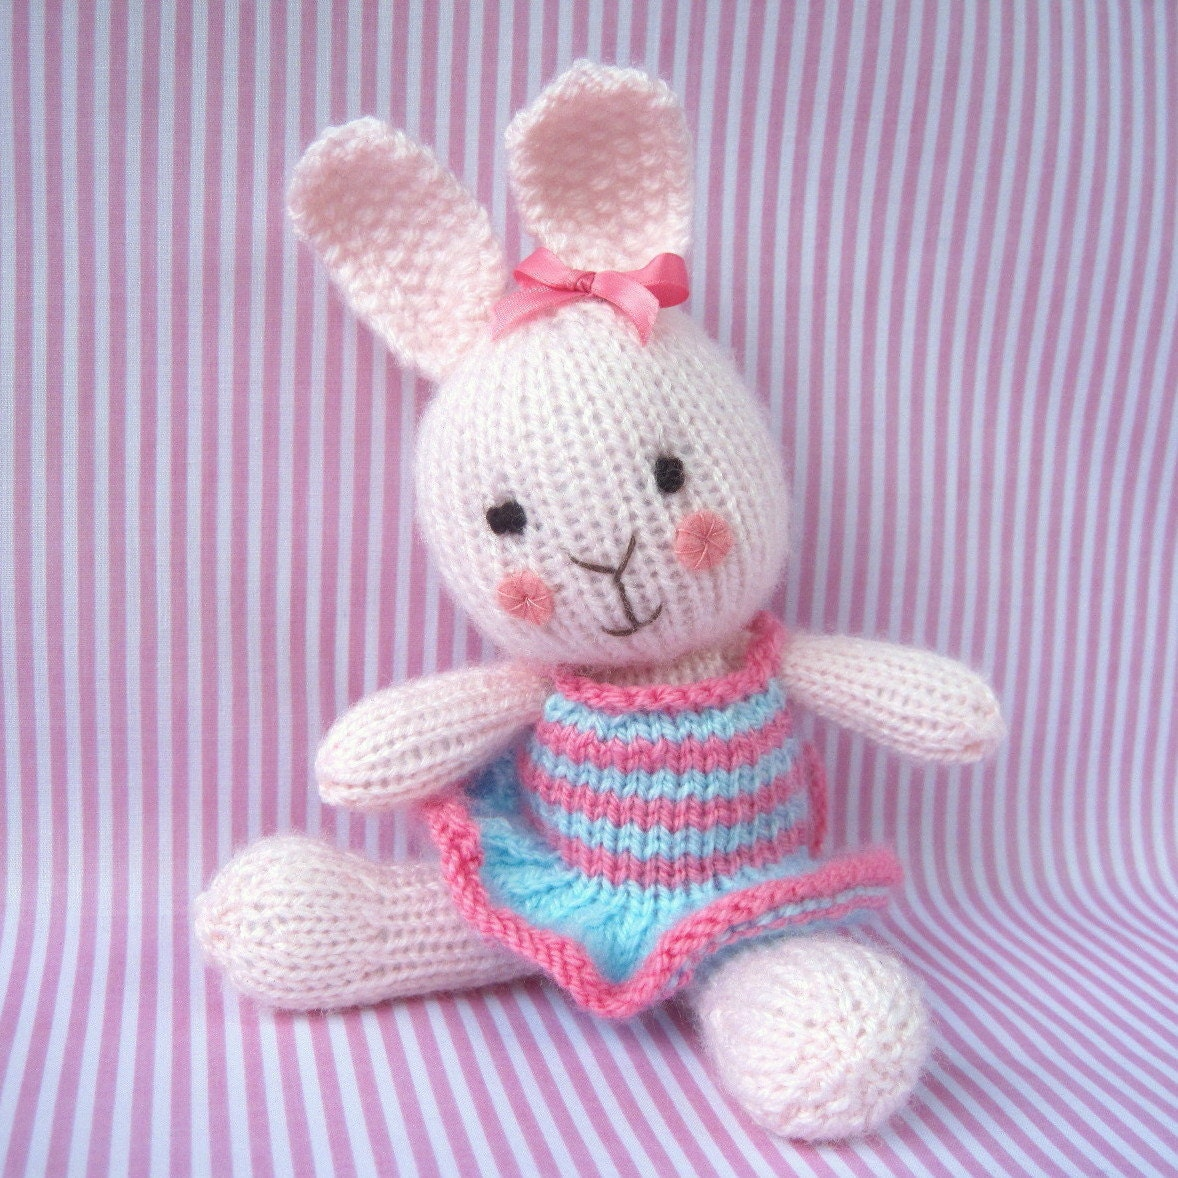 Knitted Rabbit Pattern : Candytuft toy bunny rabbit doll knitting pattern PDF